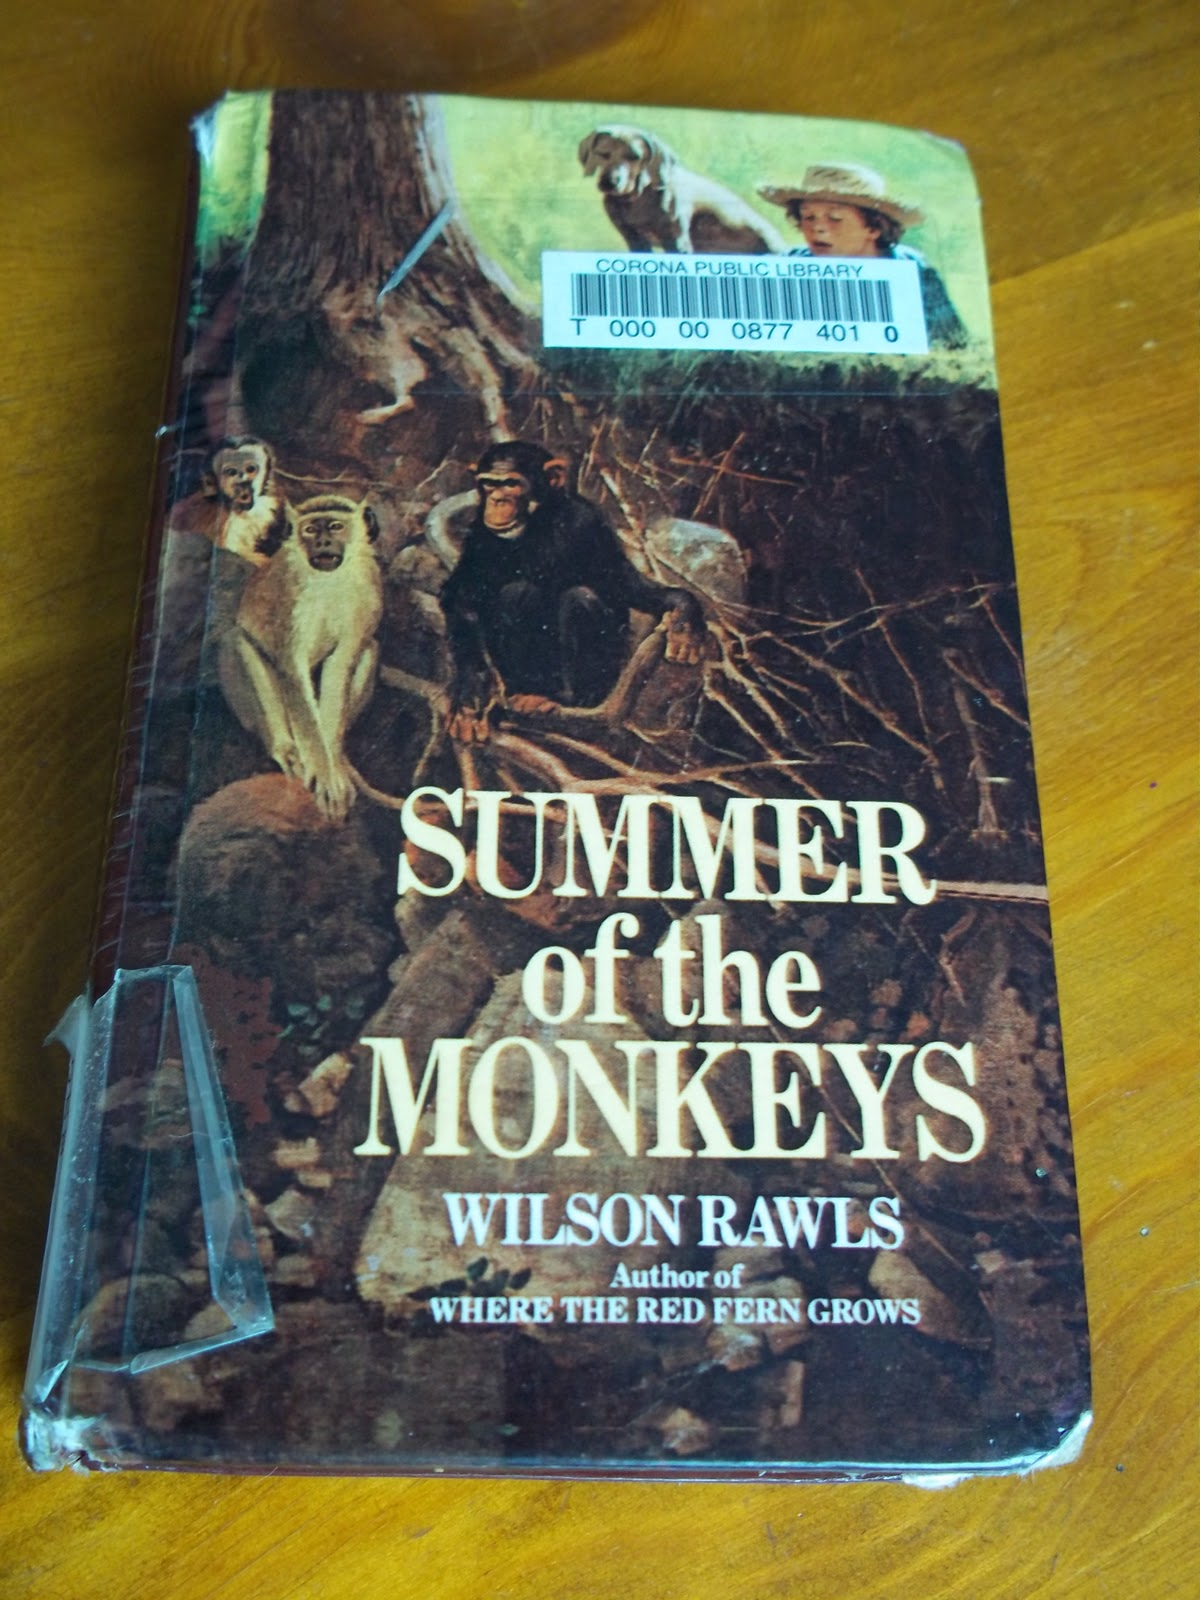 an analysis of jay berry lee in summer of the monkeys by wilson rawls In wilson rawls novel summer of the monkeys jay berry lee in wilson rawls novel summer of the monkeys monkeys: jay berry and his conflicts essay.